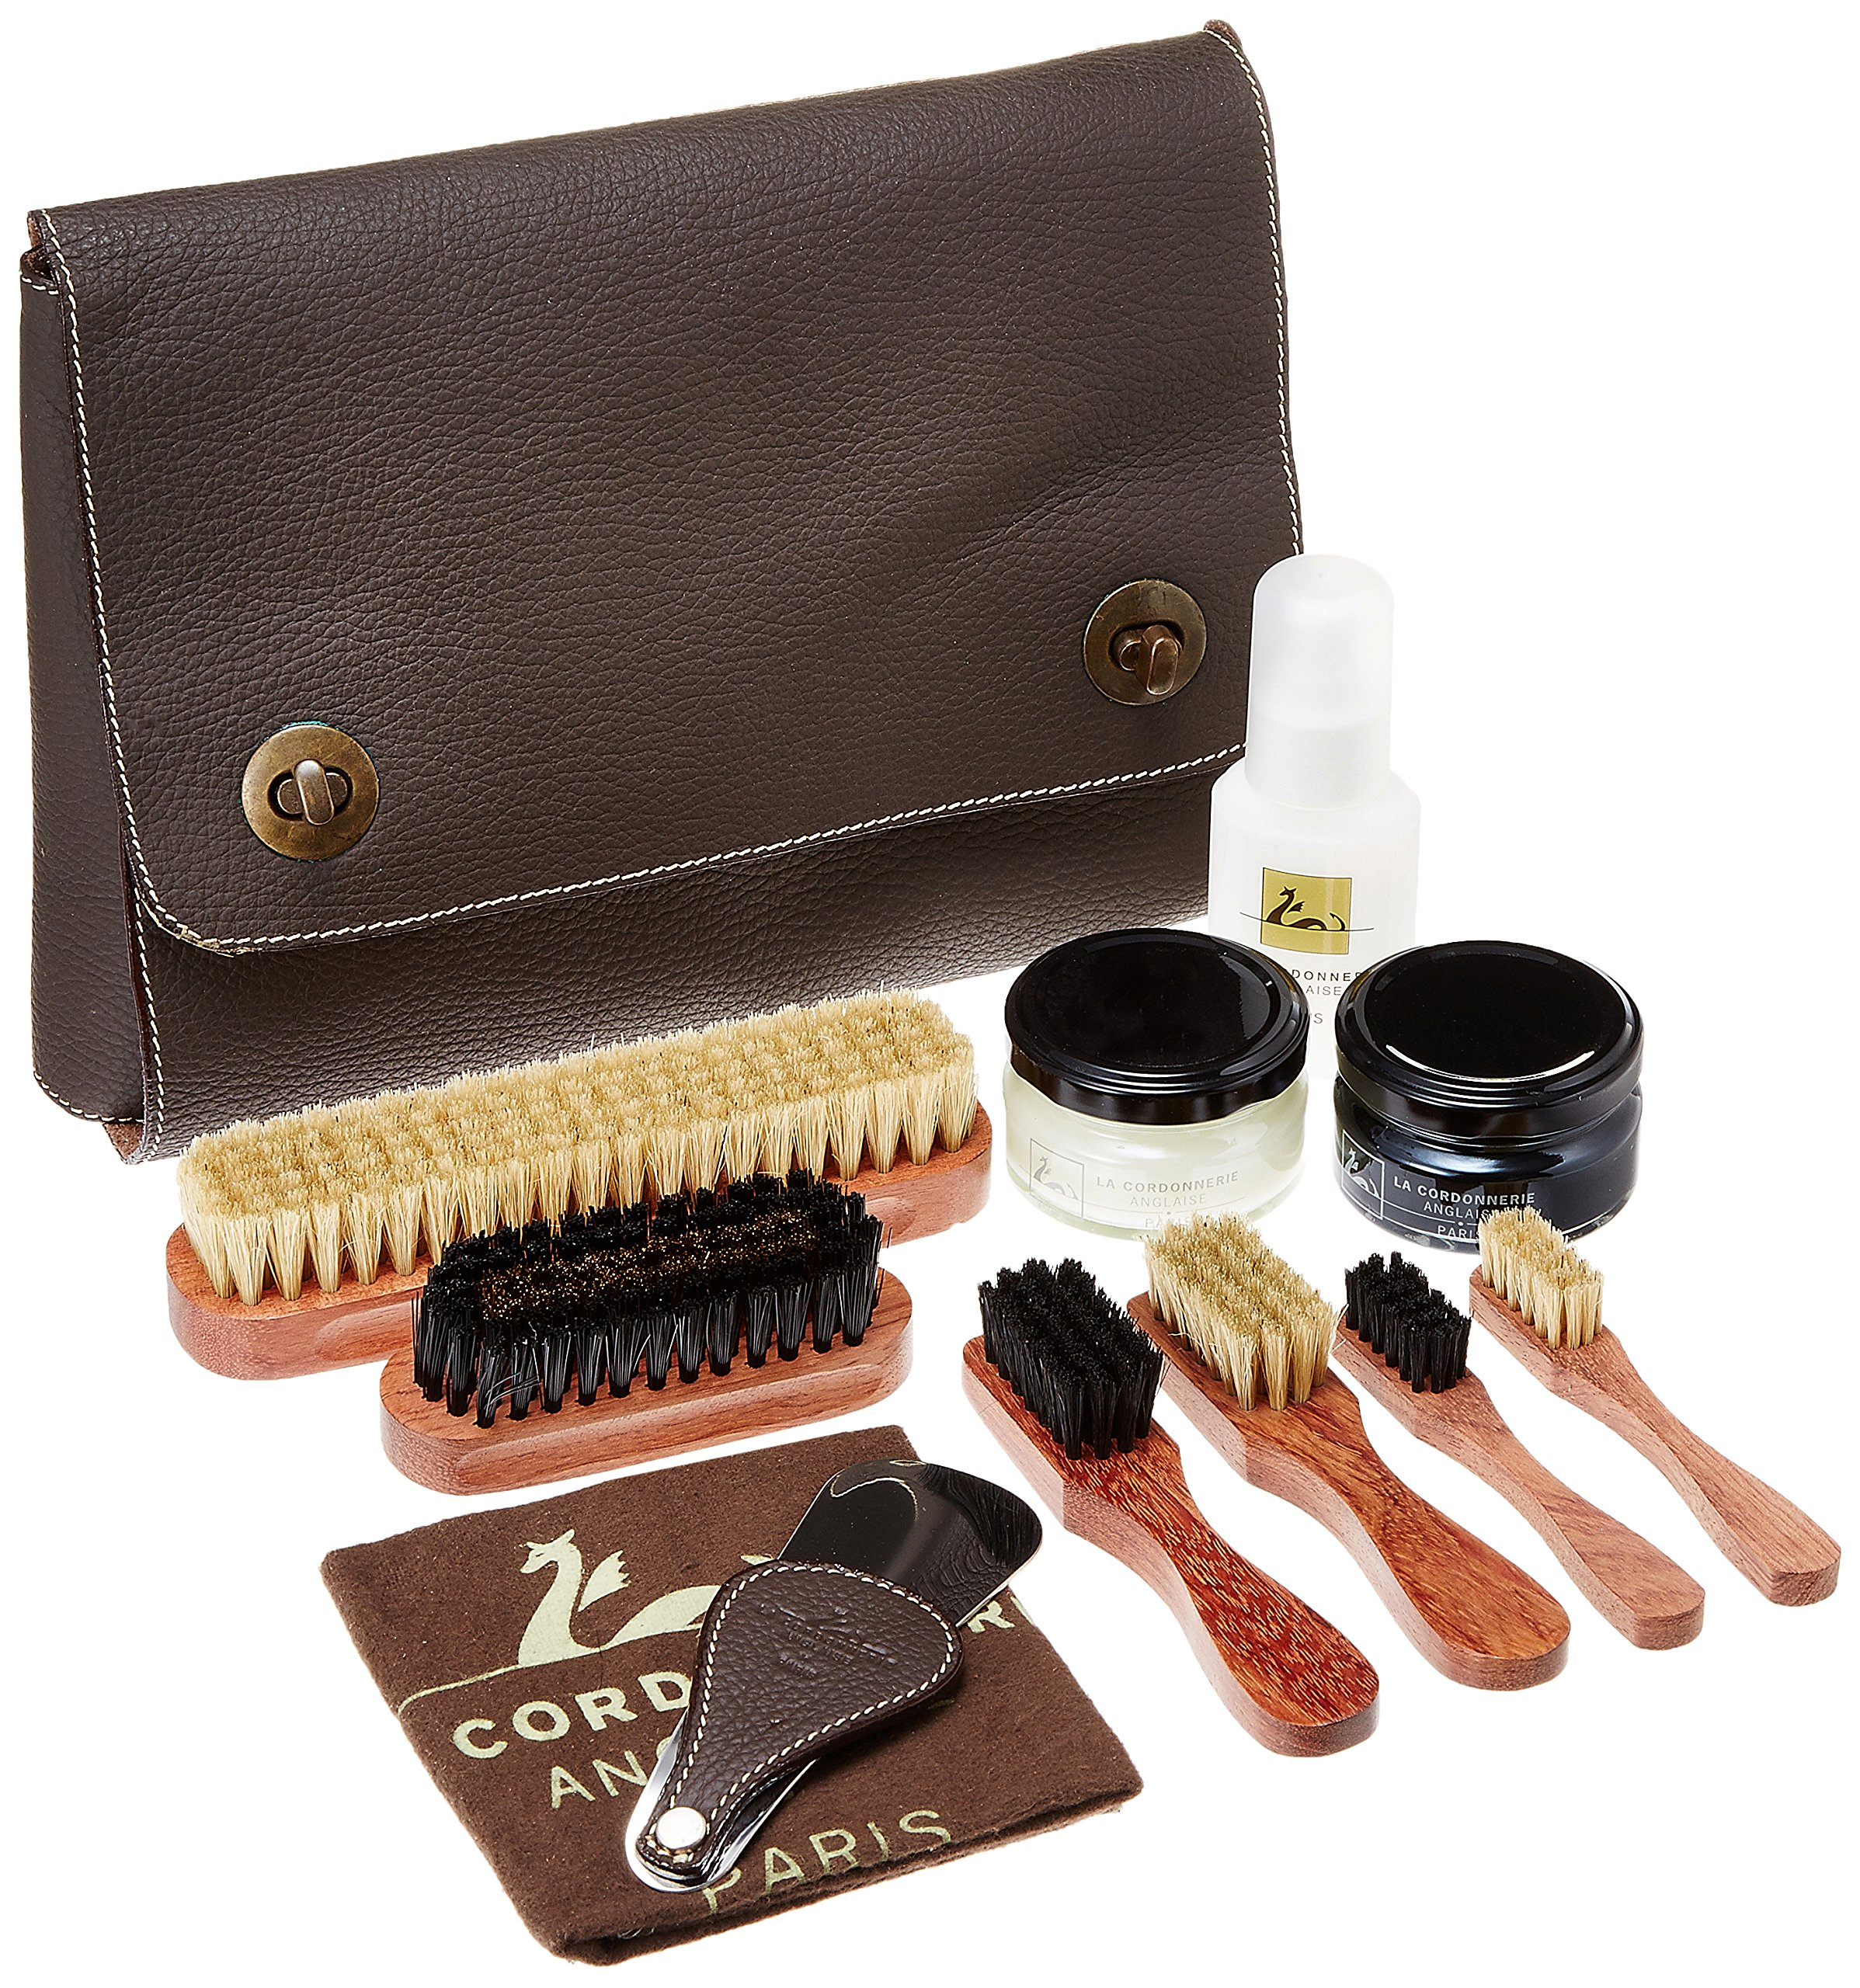 La Cordonnerie Anglaise Luxury Shoe Care Kit - Genuine Leather Case - Nomand Made In France by La Cordonnerie Anglaise